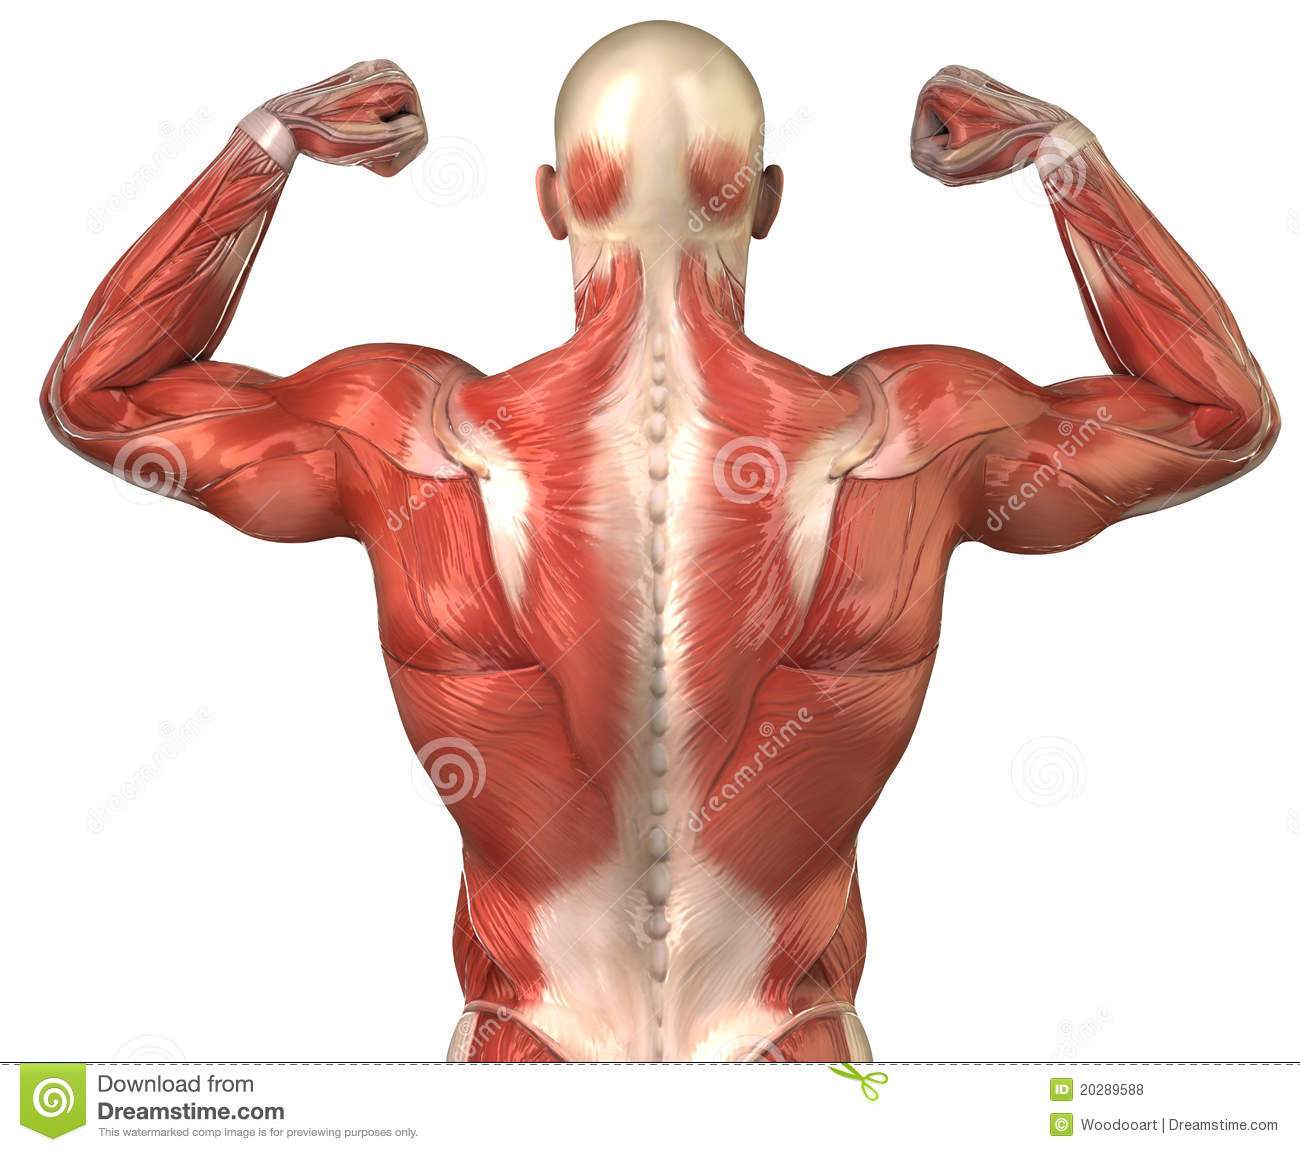 Image result for back muscles free images